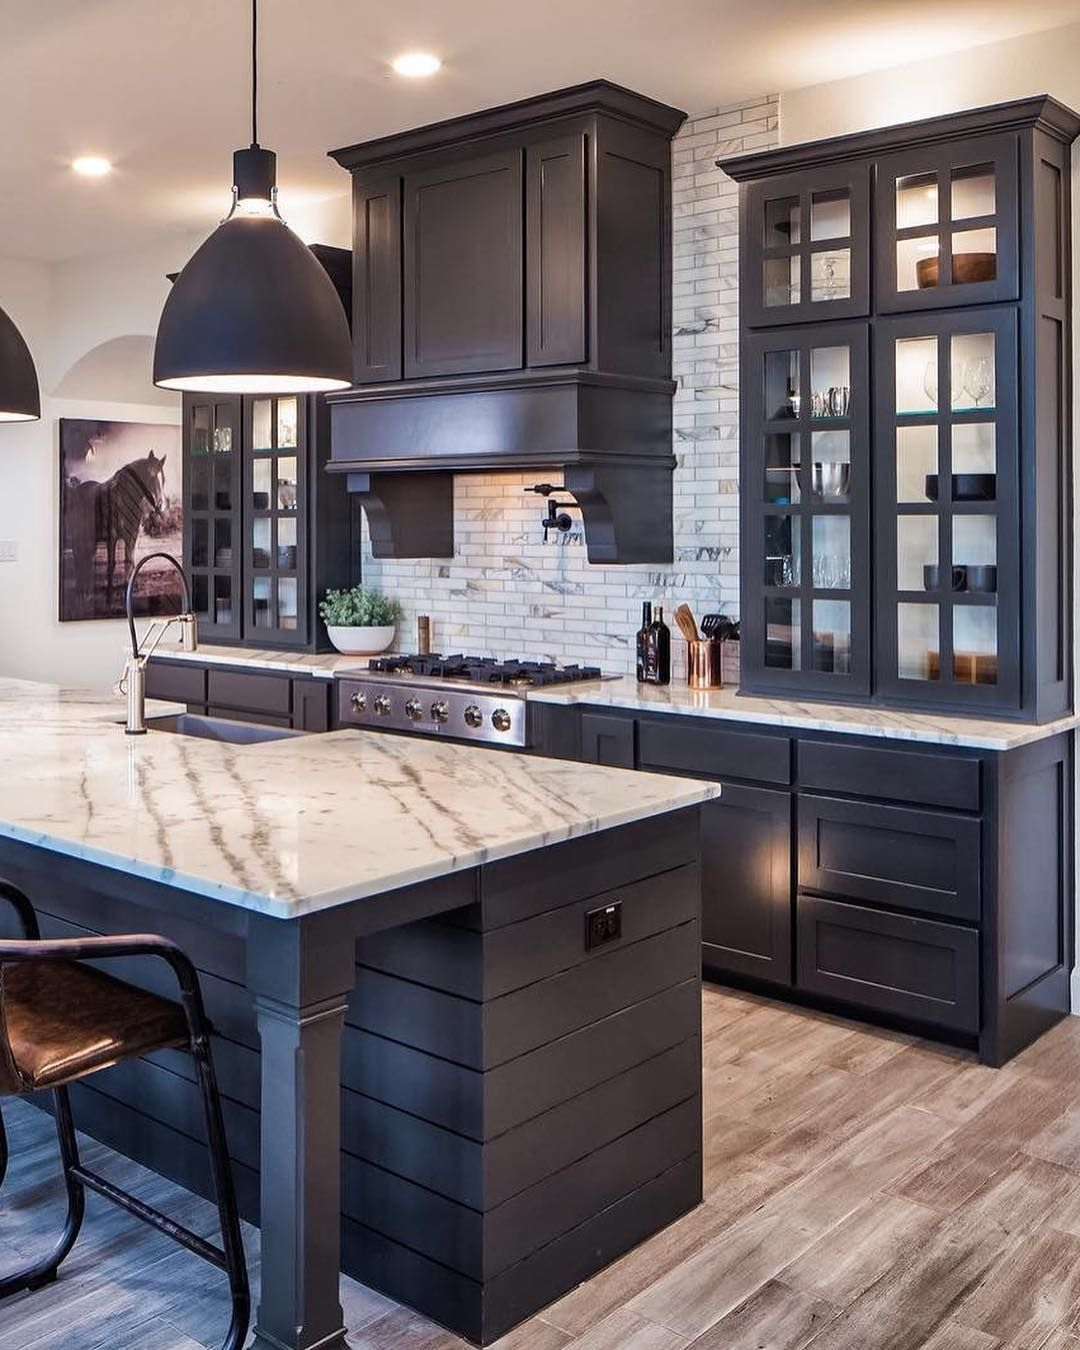 21 Best Kitchen Remodel Ideas for Renovation Your Kitchen ...